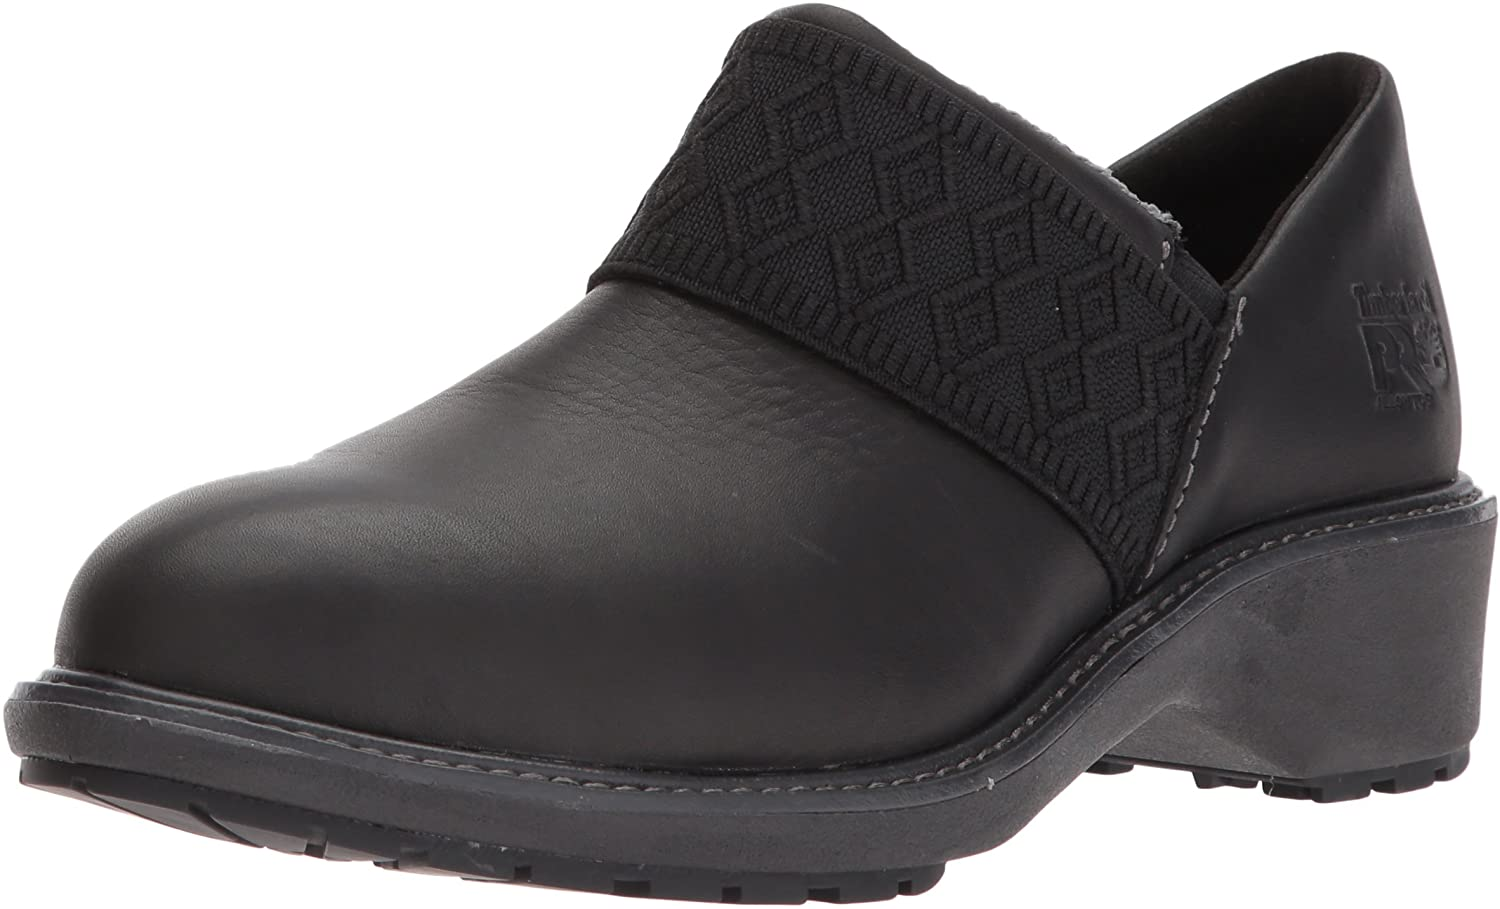 Timberland PRO Women's Riveter Alloy Toe SD+ Industrial & Construction Shoe